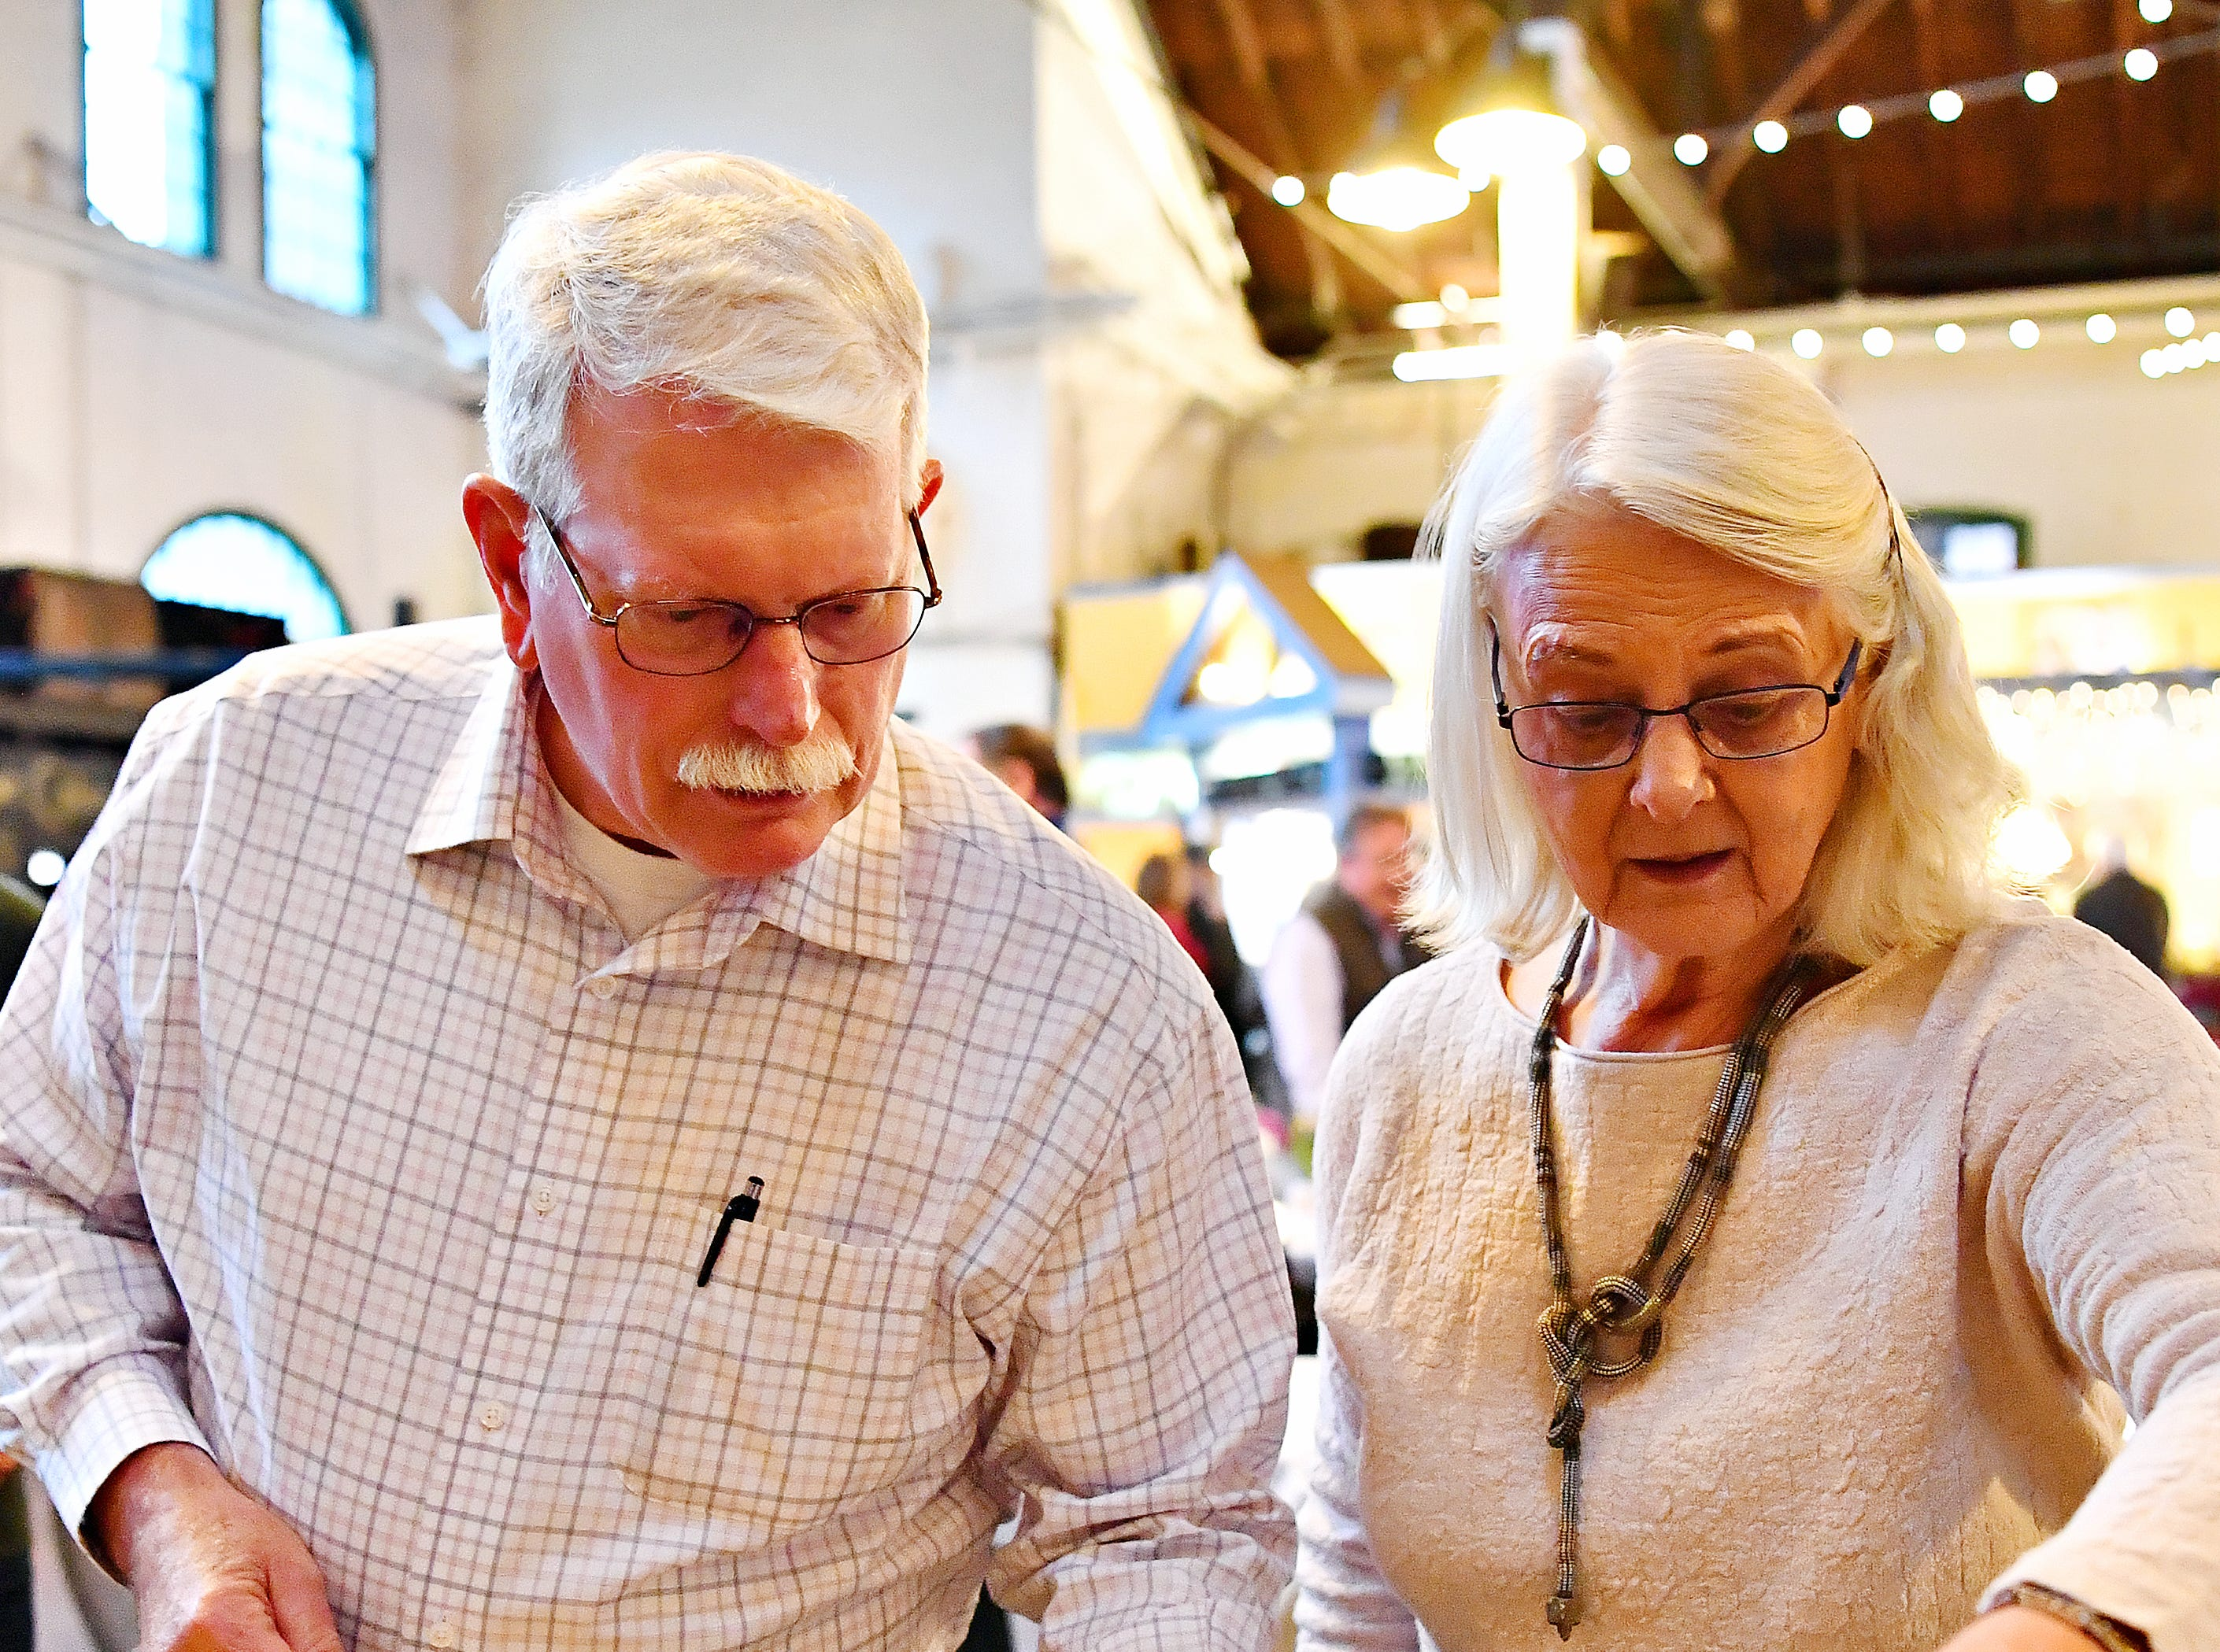 Beekeepers Frank Bodenberg, left, of Gettysburg, and Lauren Andersen, of Stewartstown, examine honey products being tasted during the York County Beekeepers' Association Centennial Banquet at Central Market in York City, Friday, March 8, 2019. Bodenberg has been keeping bees for about eight years, and Andersen six. Dawn J. Sagert photo